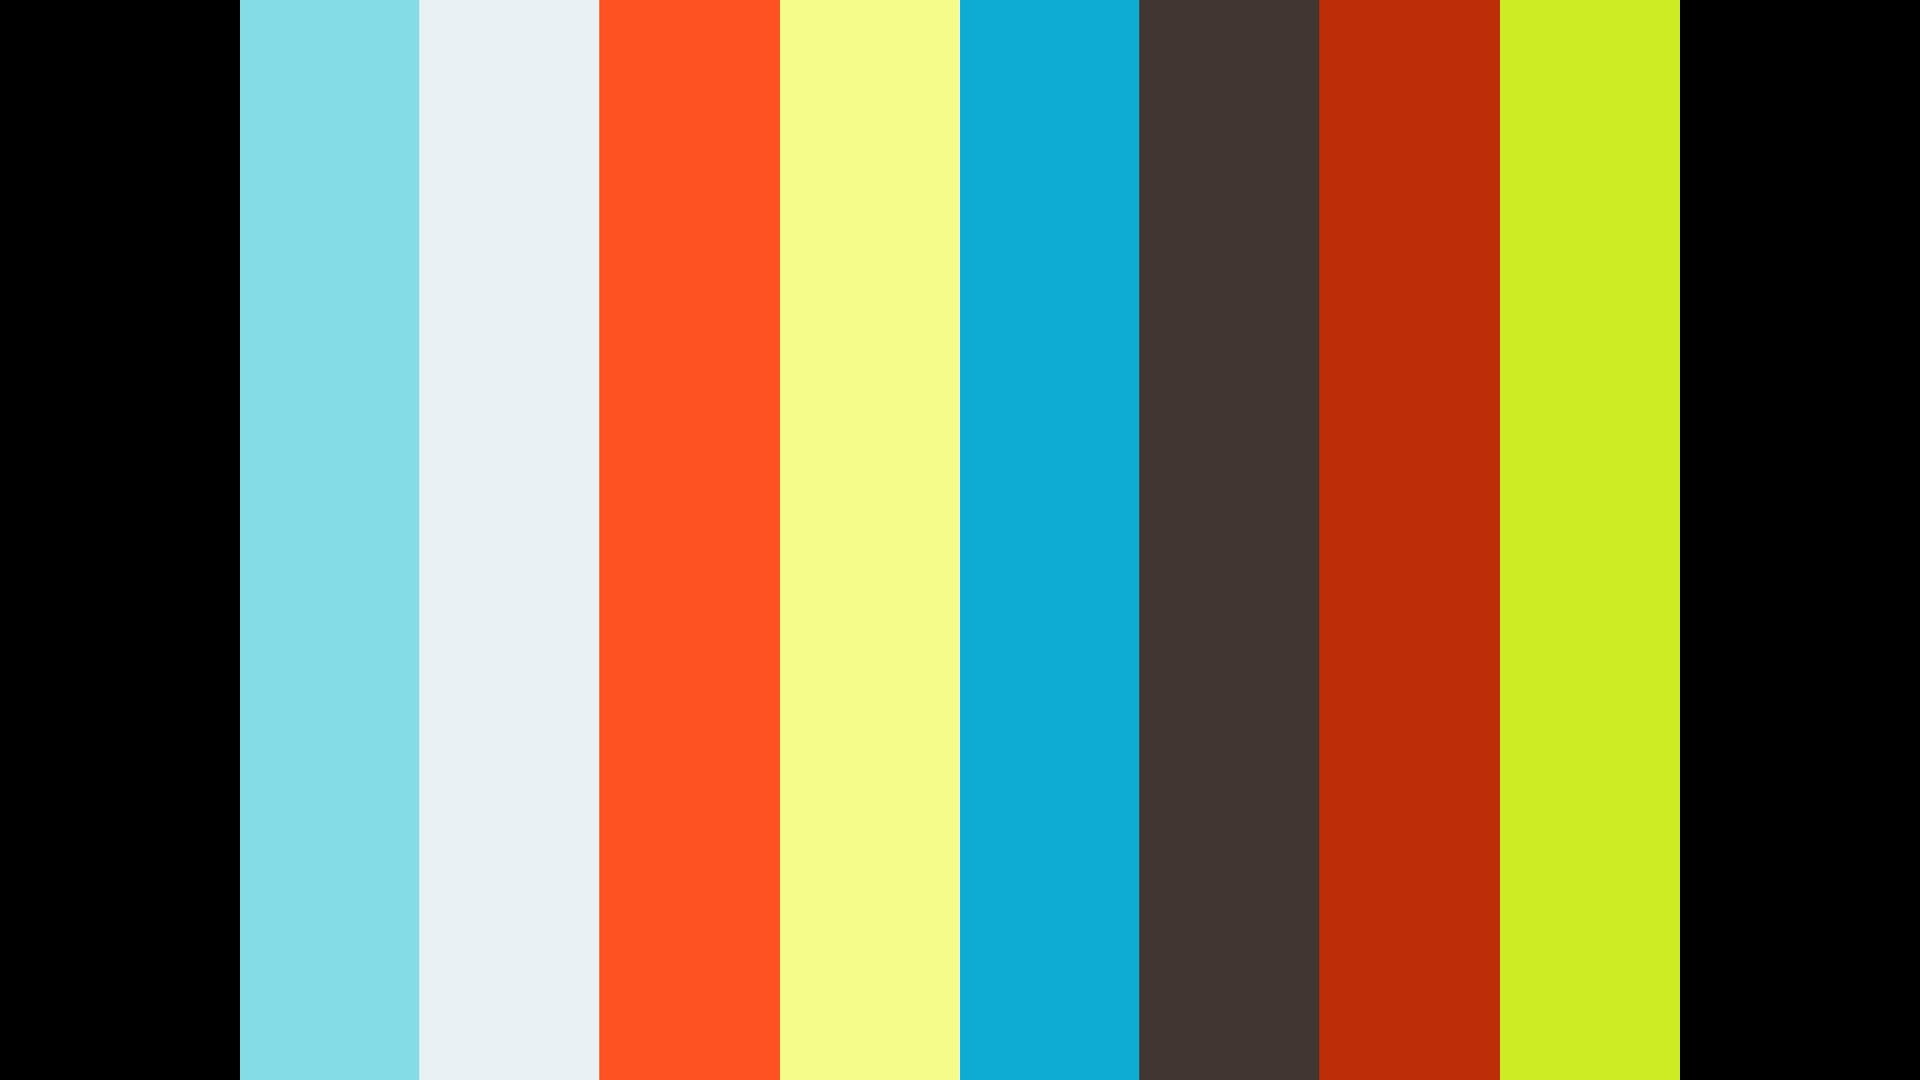 Joffrey West Los Angeles Intensive 2013 - Roy Trbute to Roy Lichtenstein, Choreography by Alice Alyse - Joffrey Ballet School